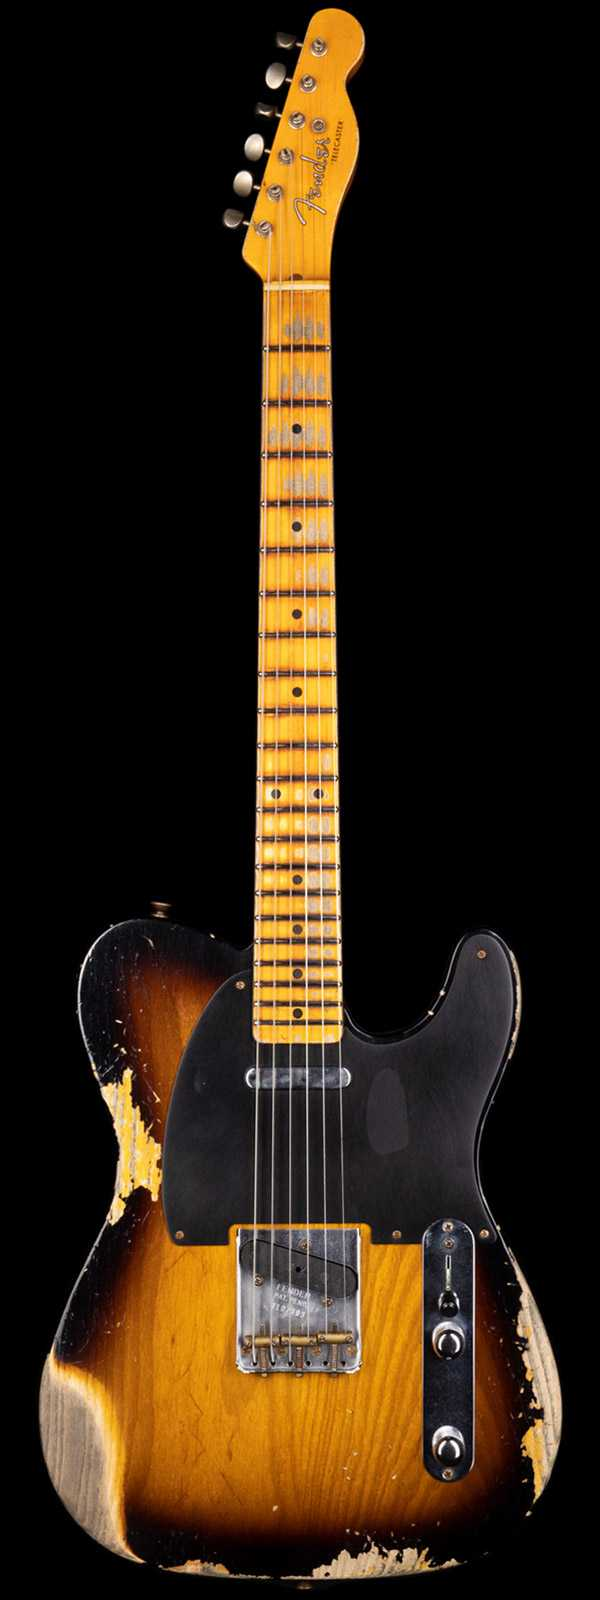 Fender Custom Shop 1952 Telecaster Heavy Relic Streamlined U Neck 2-Tone Sunburst